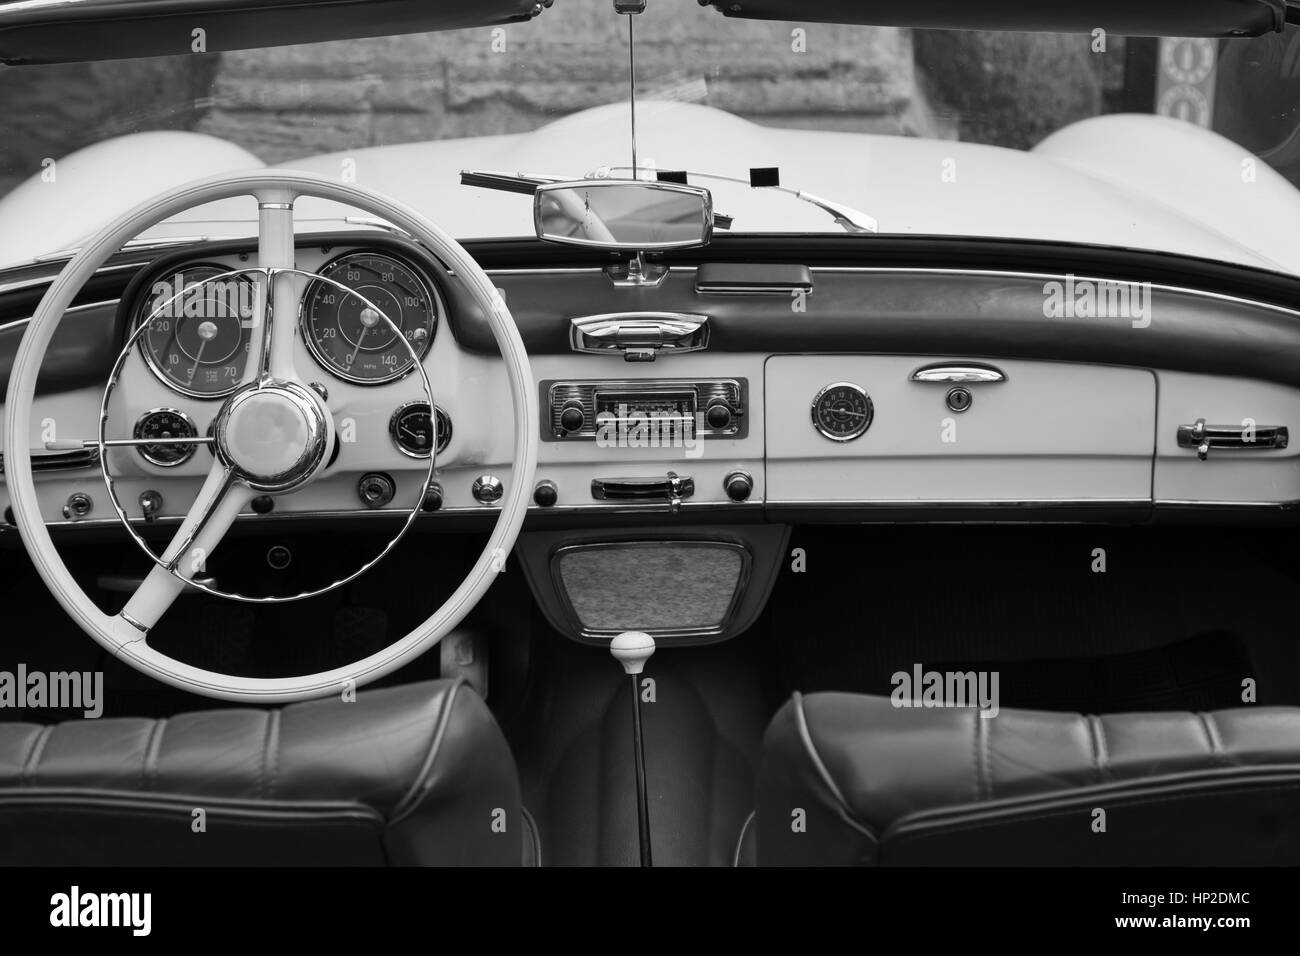 Black and white interior of a classic car convertible - Stock Image